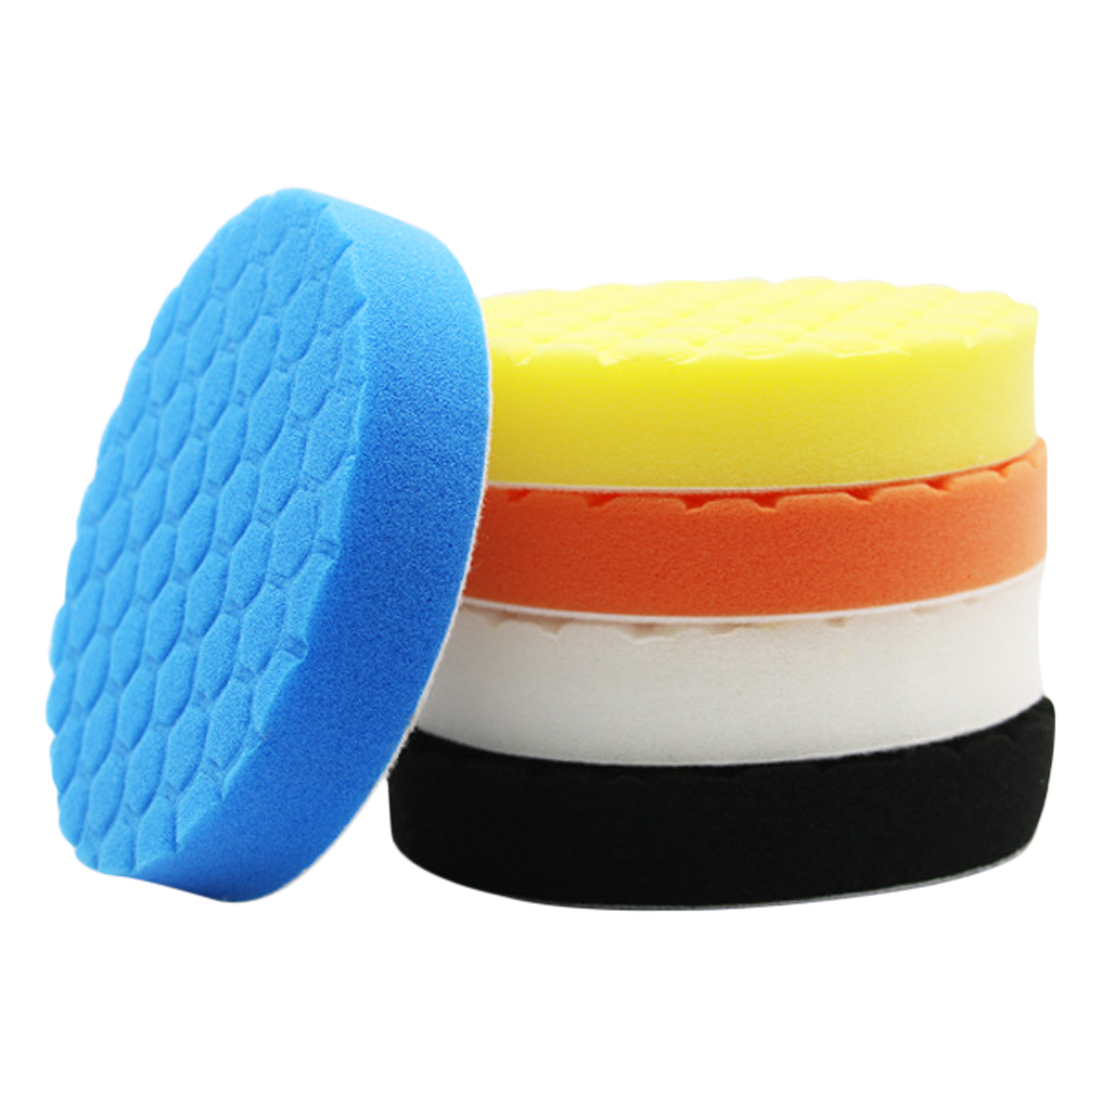 Buffing Sponge Polishing Pad Kit Set 3pcs 3/4/5/6/7inch Hexagonal Polished Sponge Disc For Car Polisher Buffer